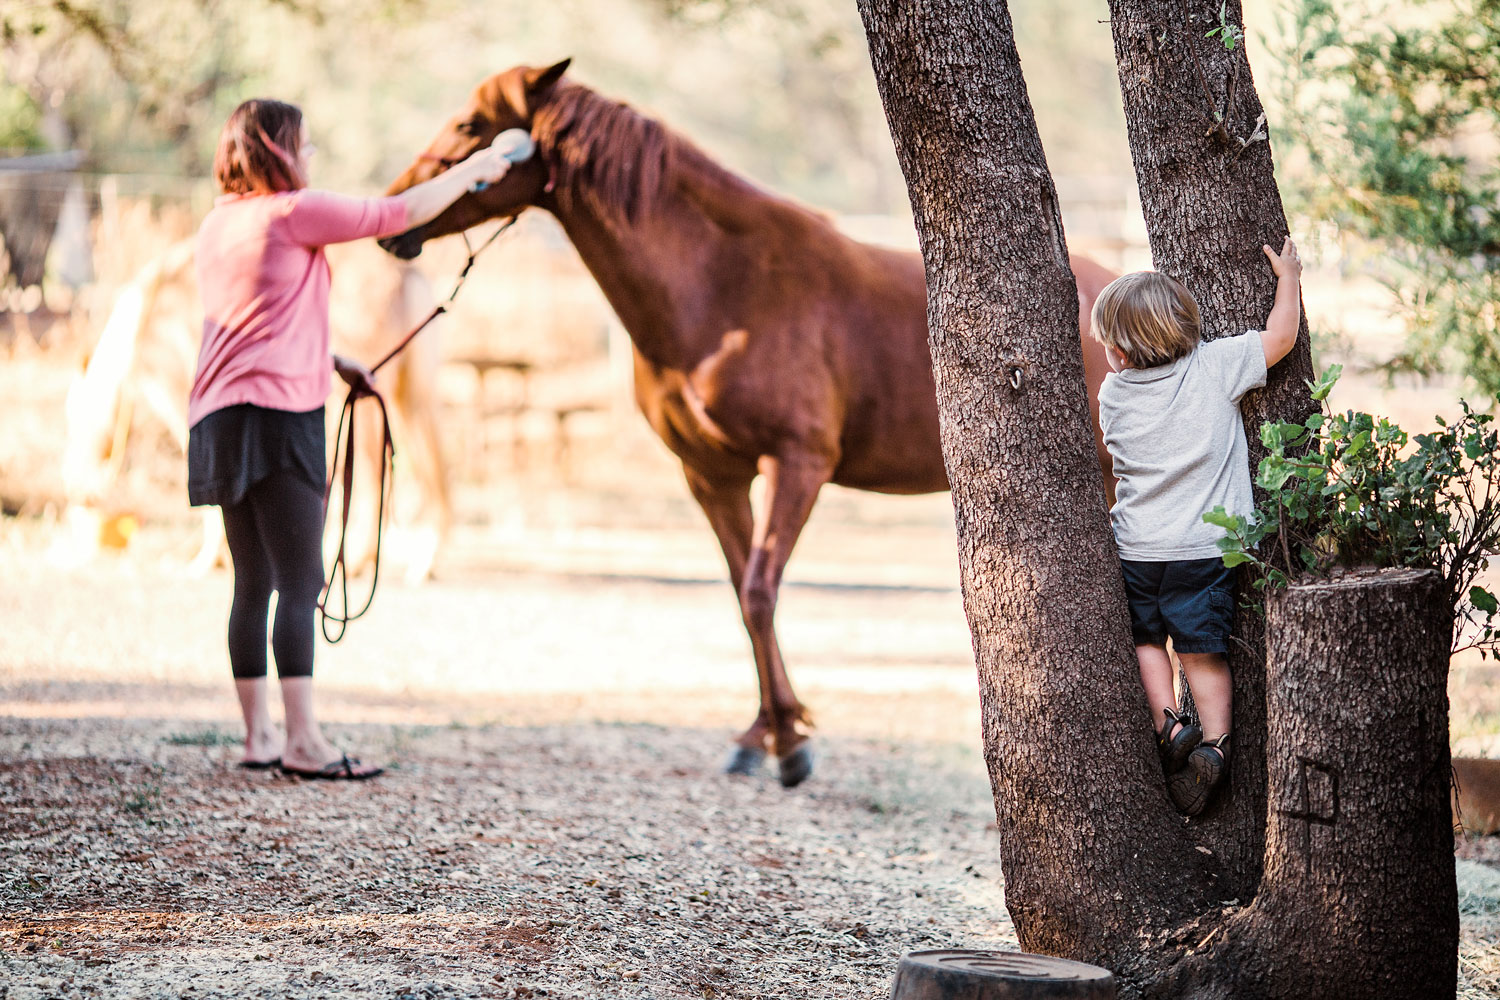 A boy watches as a horse is being prepared to ride during a family lifestyle photo session in Northern California.